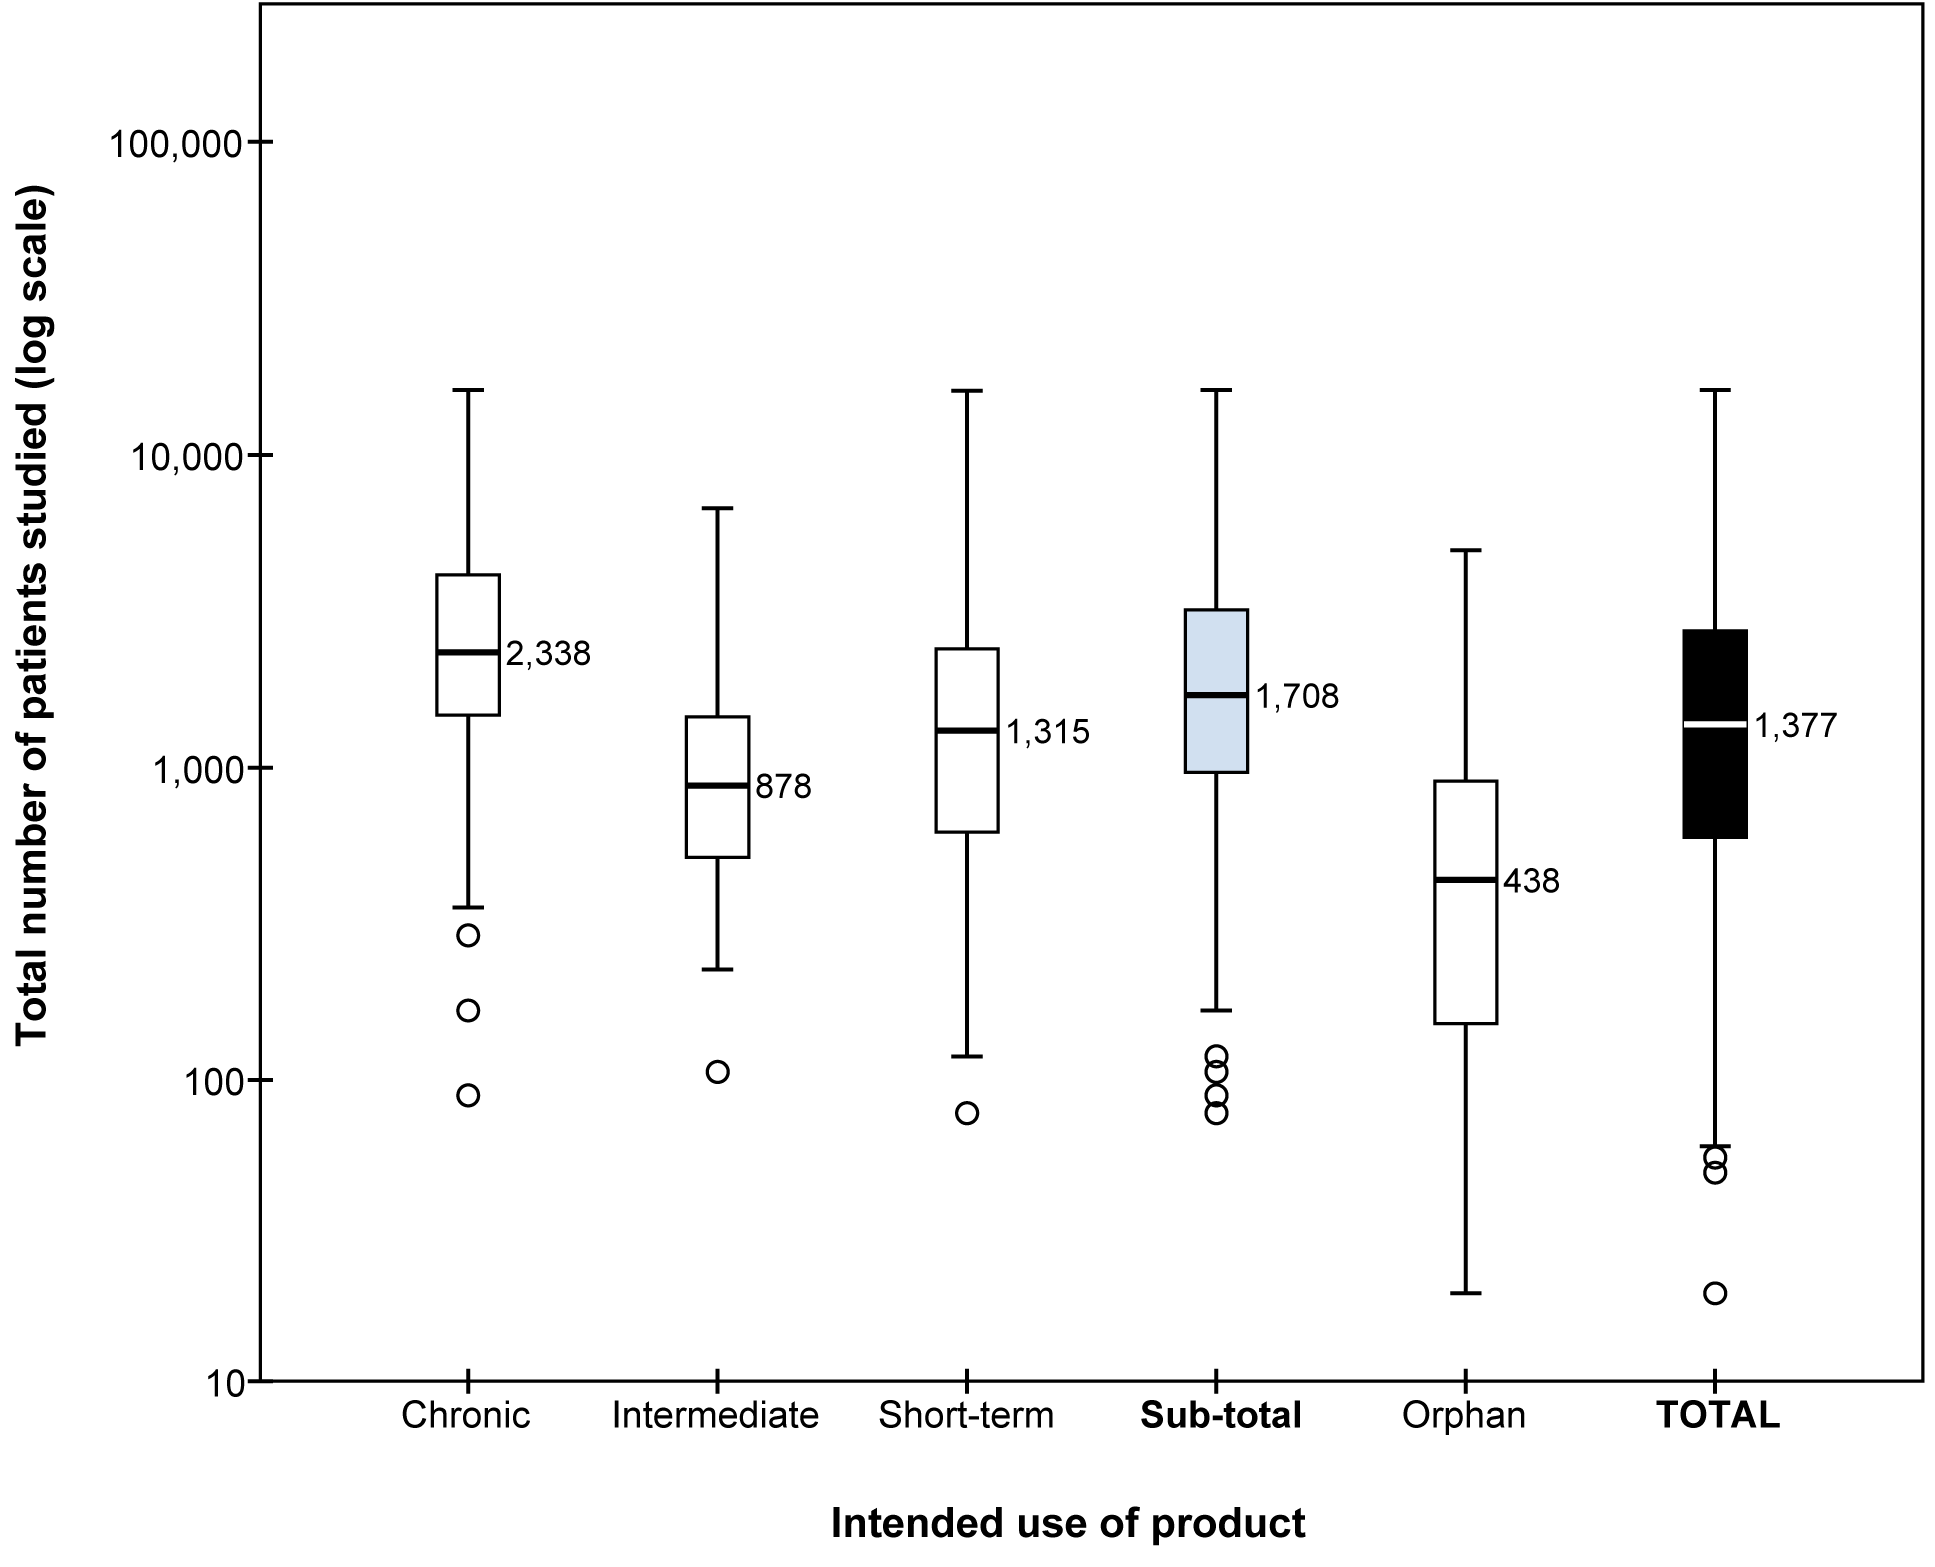 Boxplots with medians of the number of patients studied before approval.